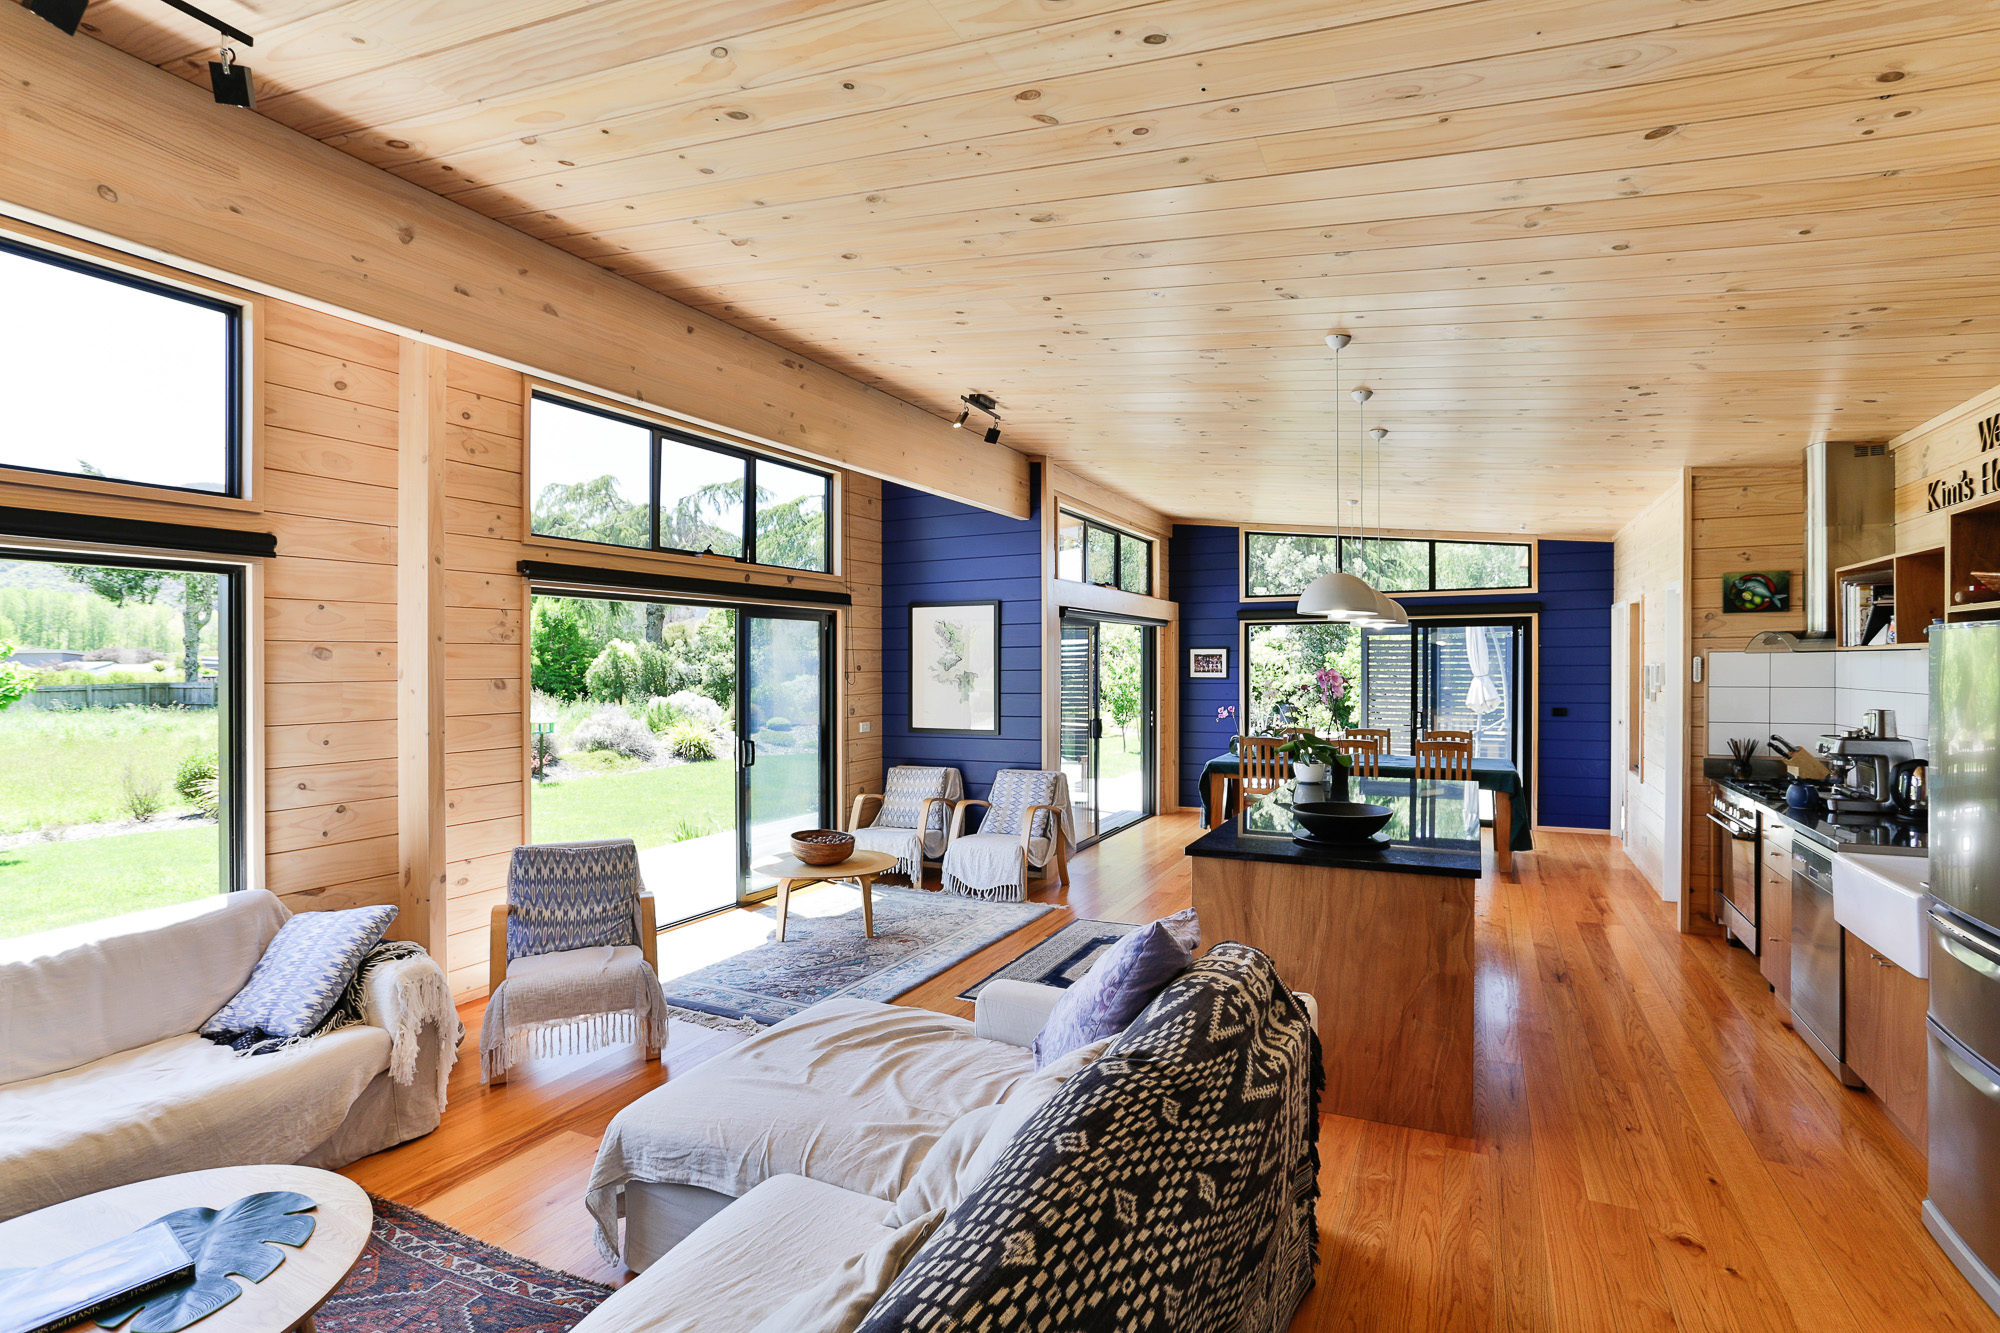 Lockwood holiday home in Nelson based on Phoenix design